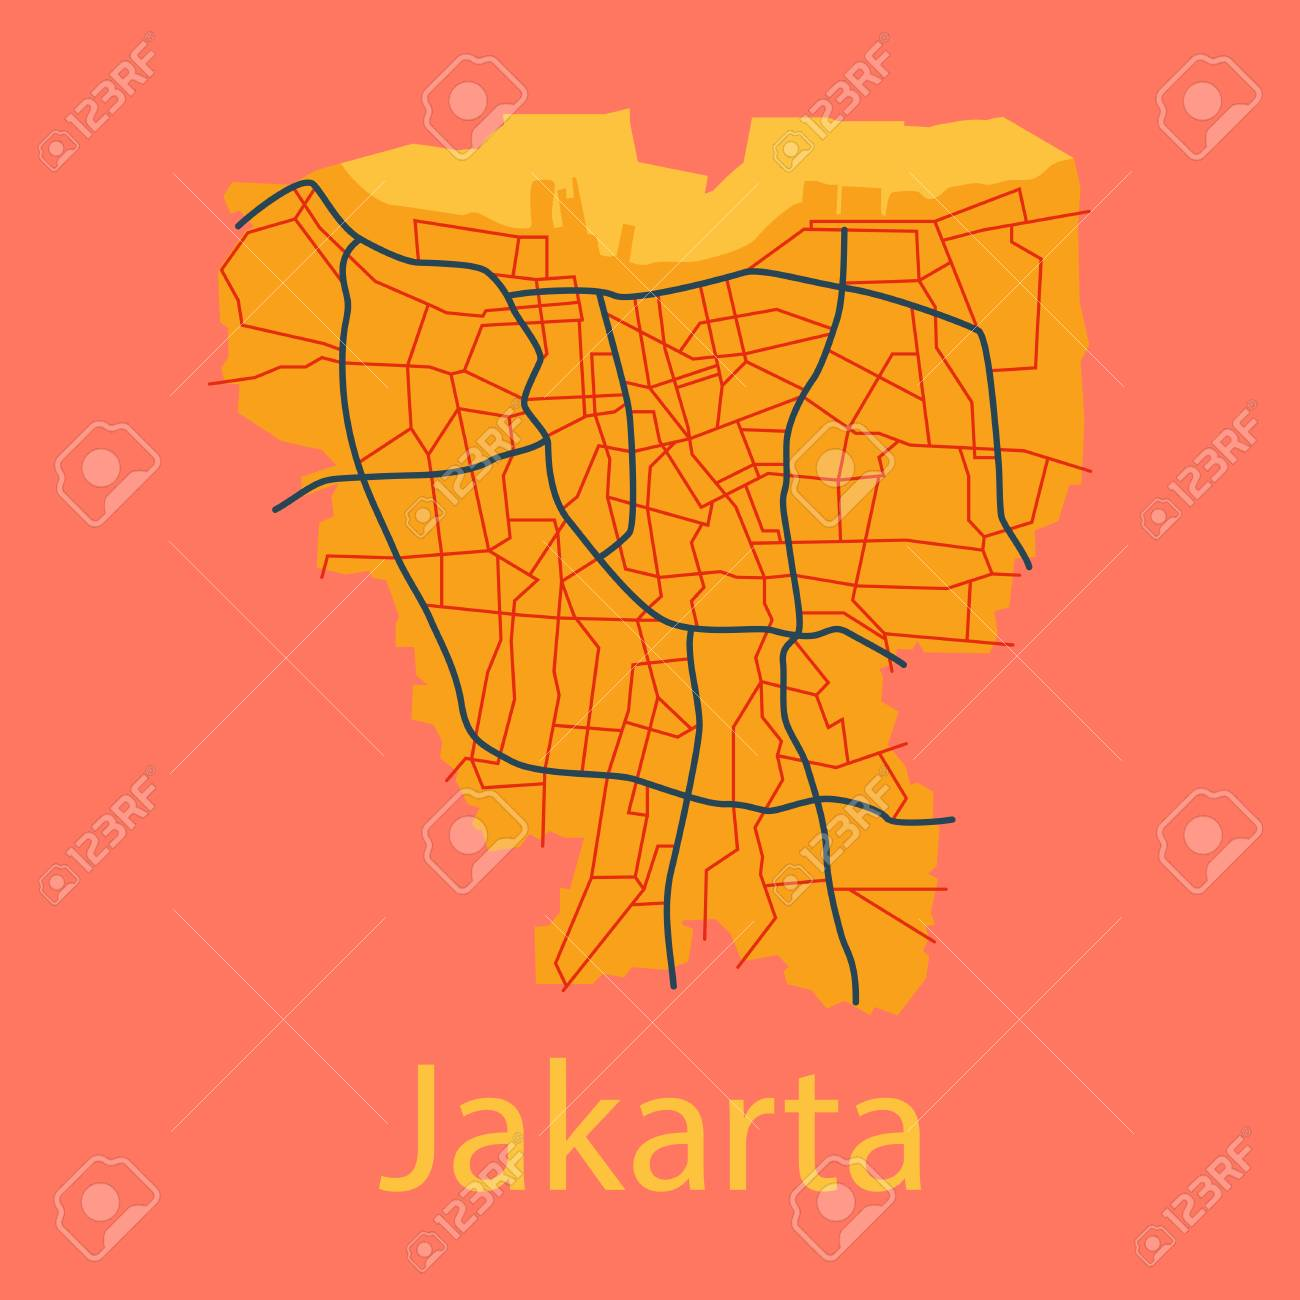 flat outline map of the indonesian capital jakarta royalty free cliparts vectors and stock illustration image 96878821 flat outline map of the indonesian capital jakarta